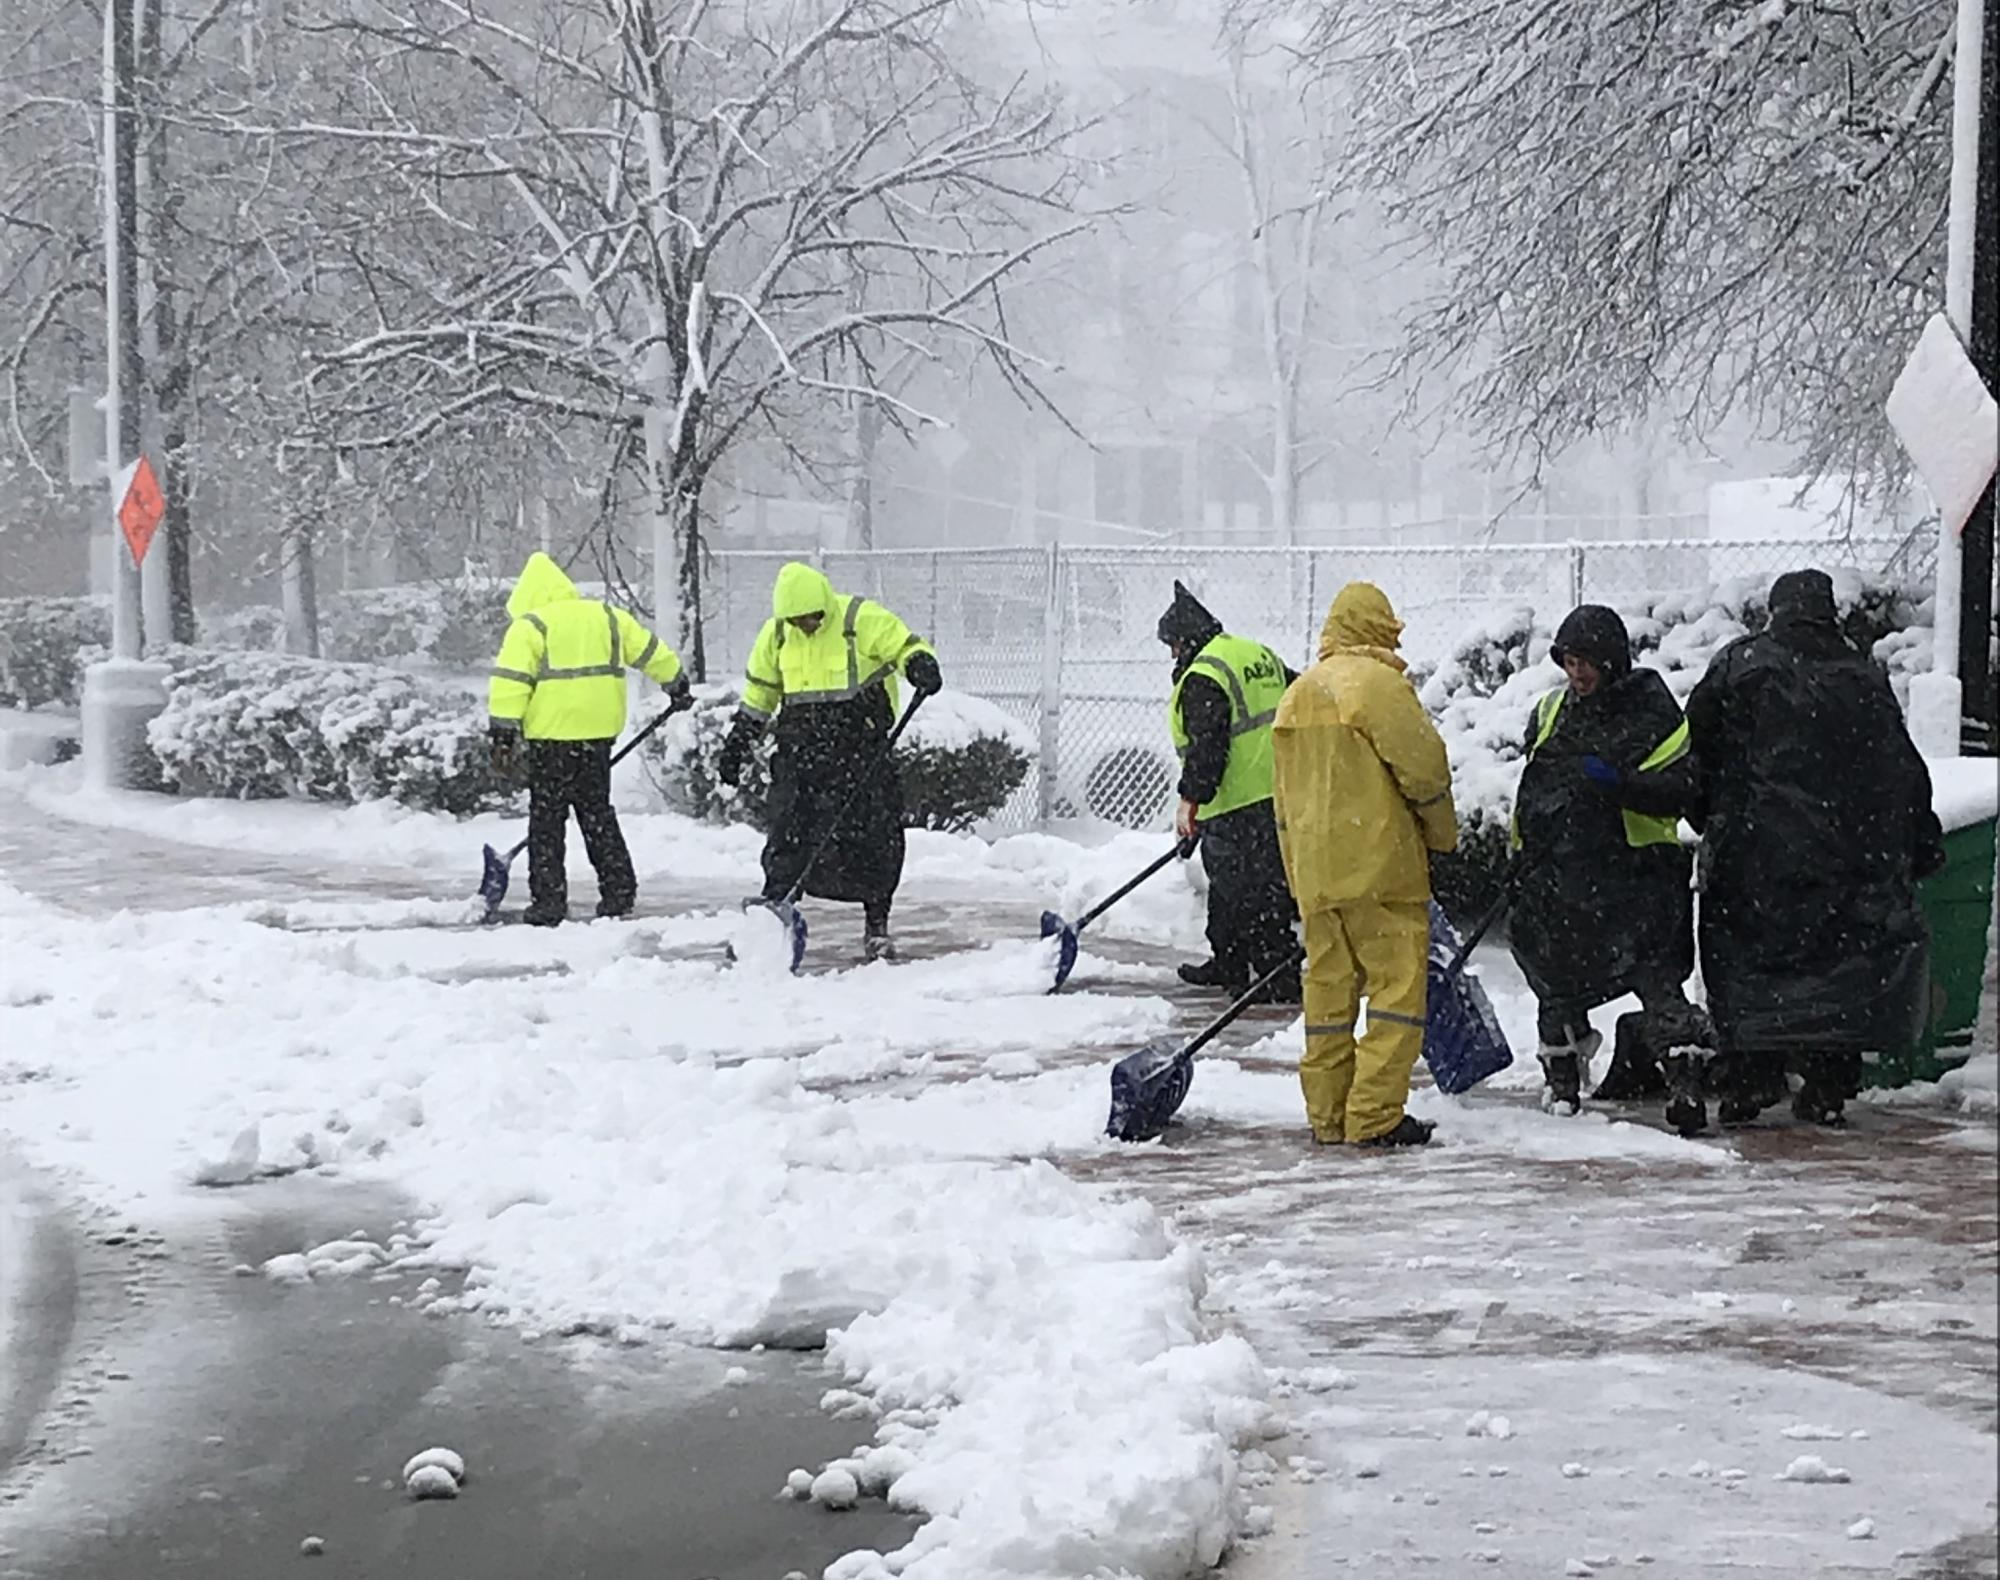 A crew of 6 shovels the sidewalk outside Forest Hills station. Snow-blanketed trees in the background.